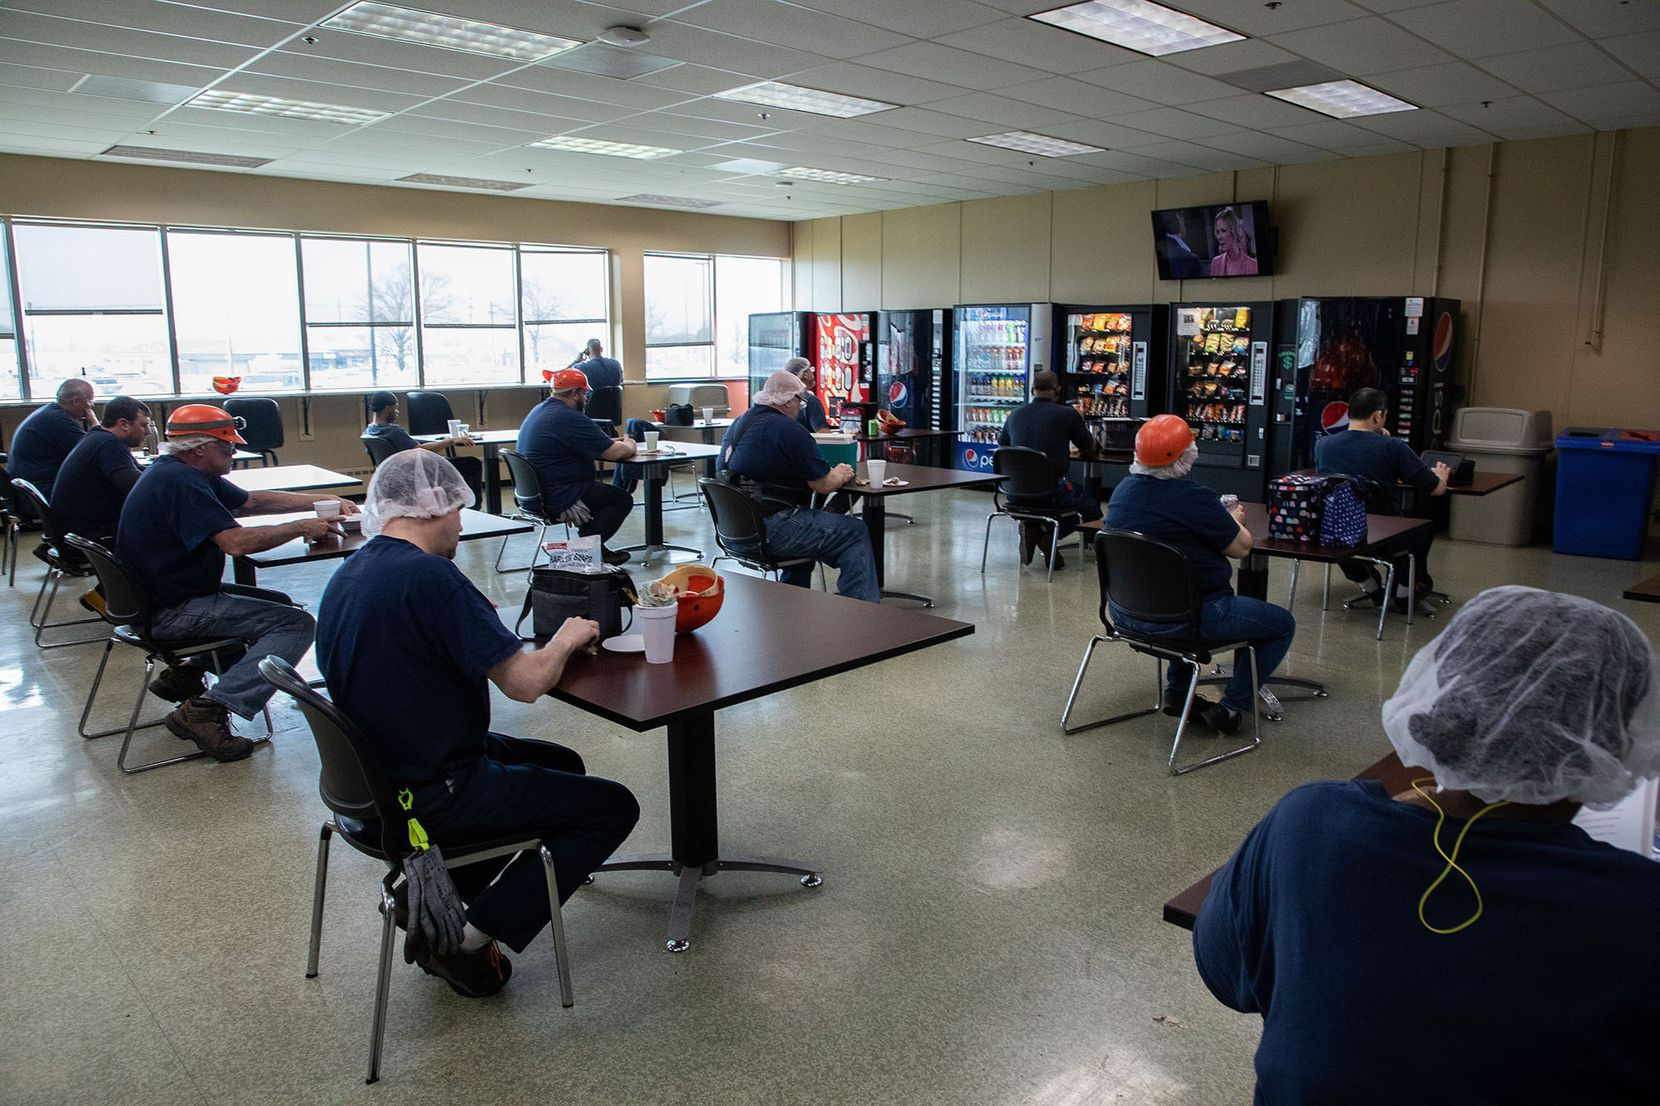 Workers practice social distancing during lunch break at the Kraft Heinz manufacturing plant.